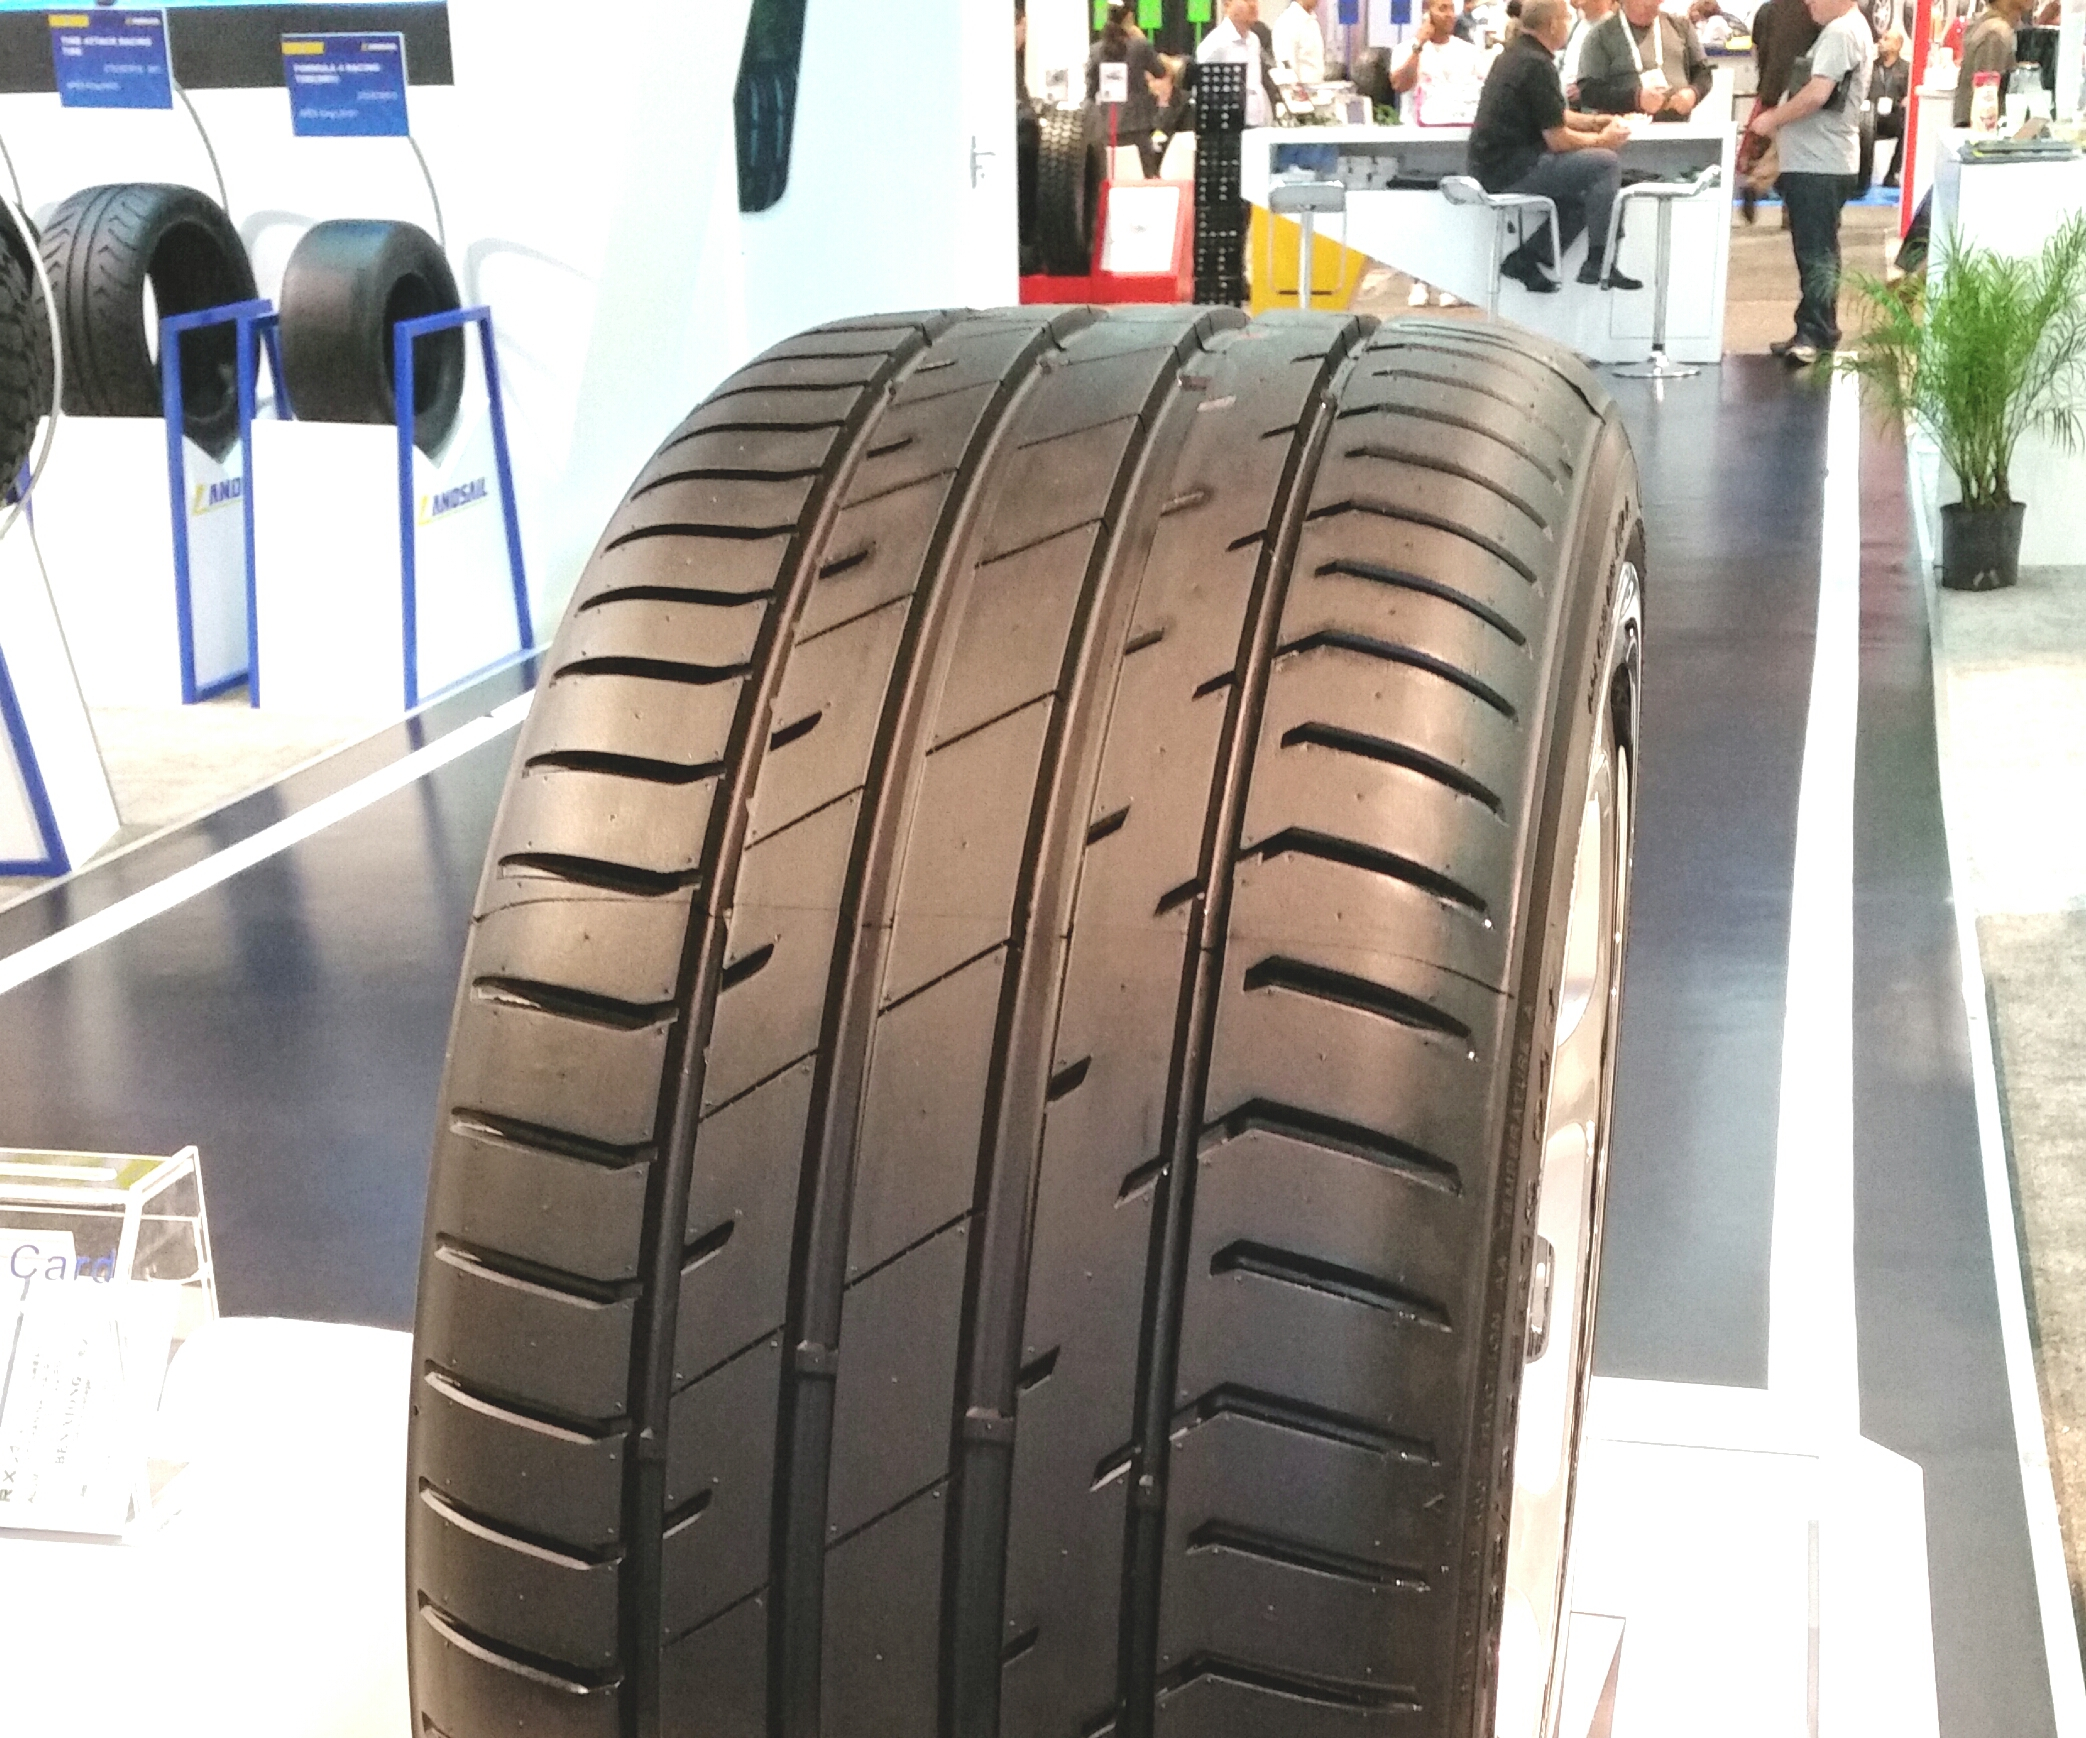 New Delinte Tires Get Special Treatment in the Sentury Tire USA Booth